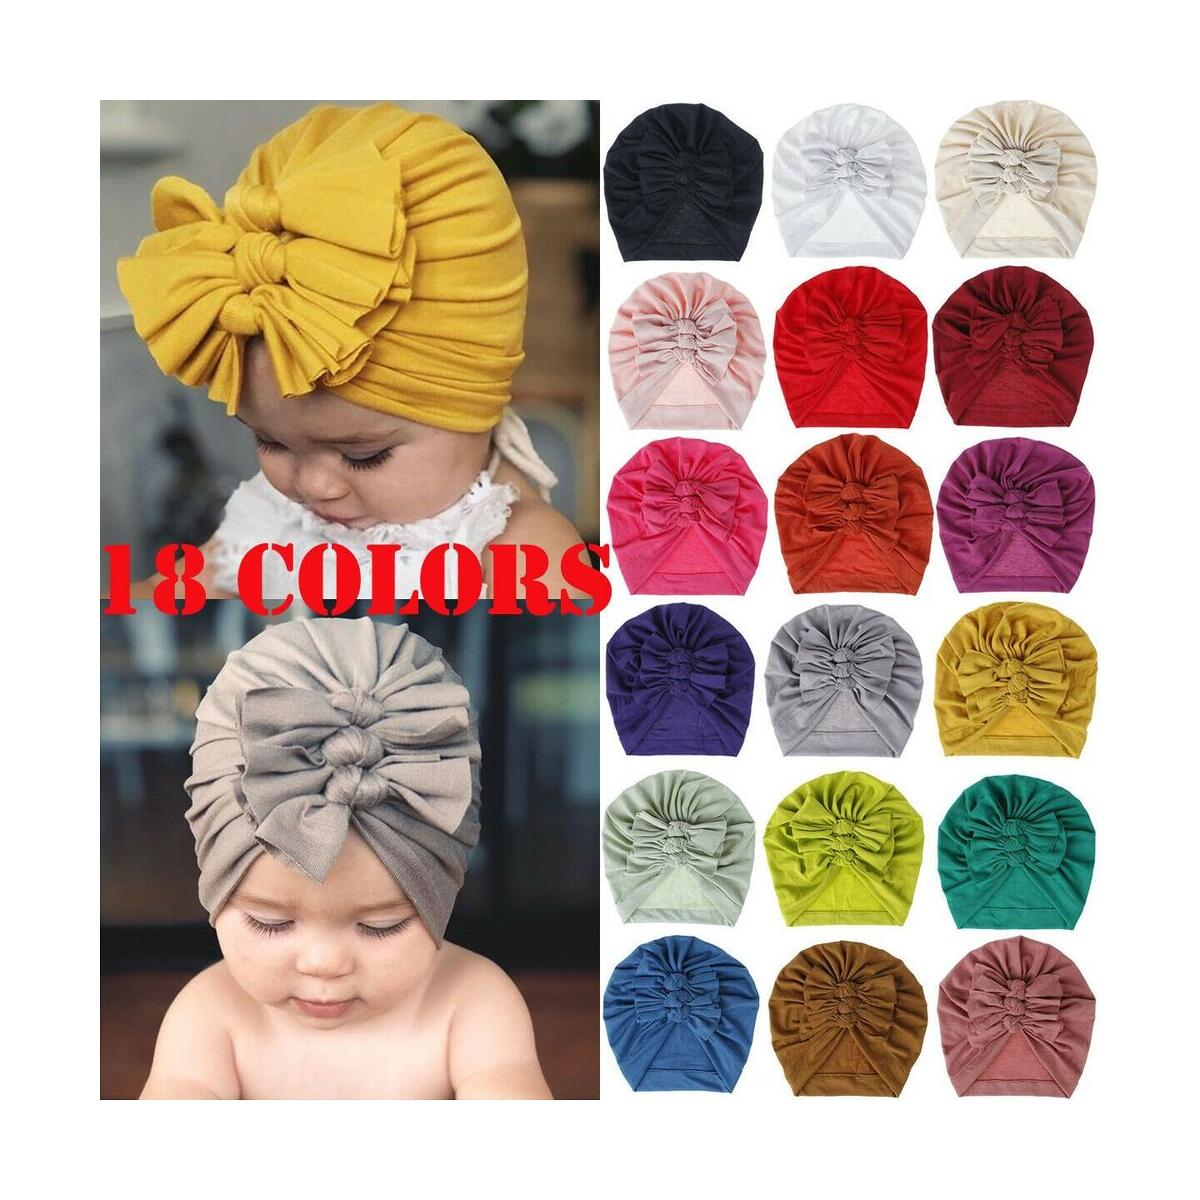 Baby Girls Big 3 Bowknot Winter Turban Hat Solid Color Cotton Beanie Cap \